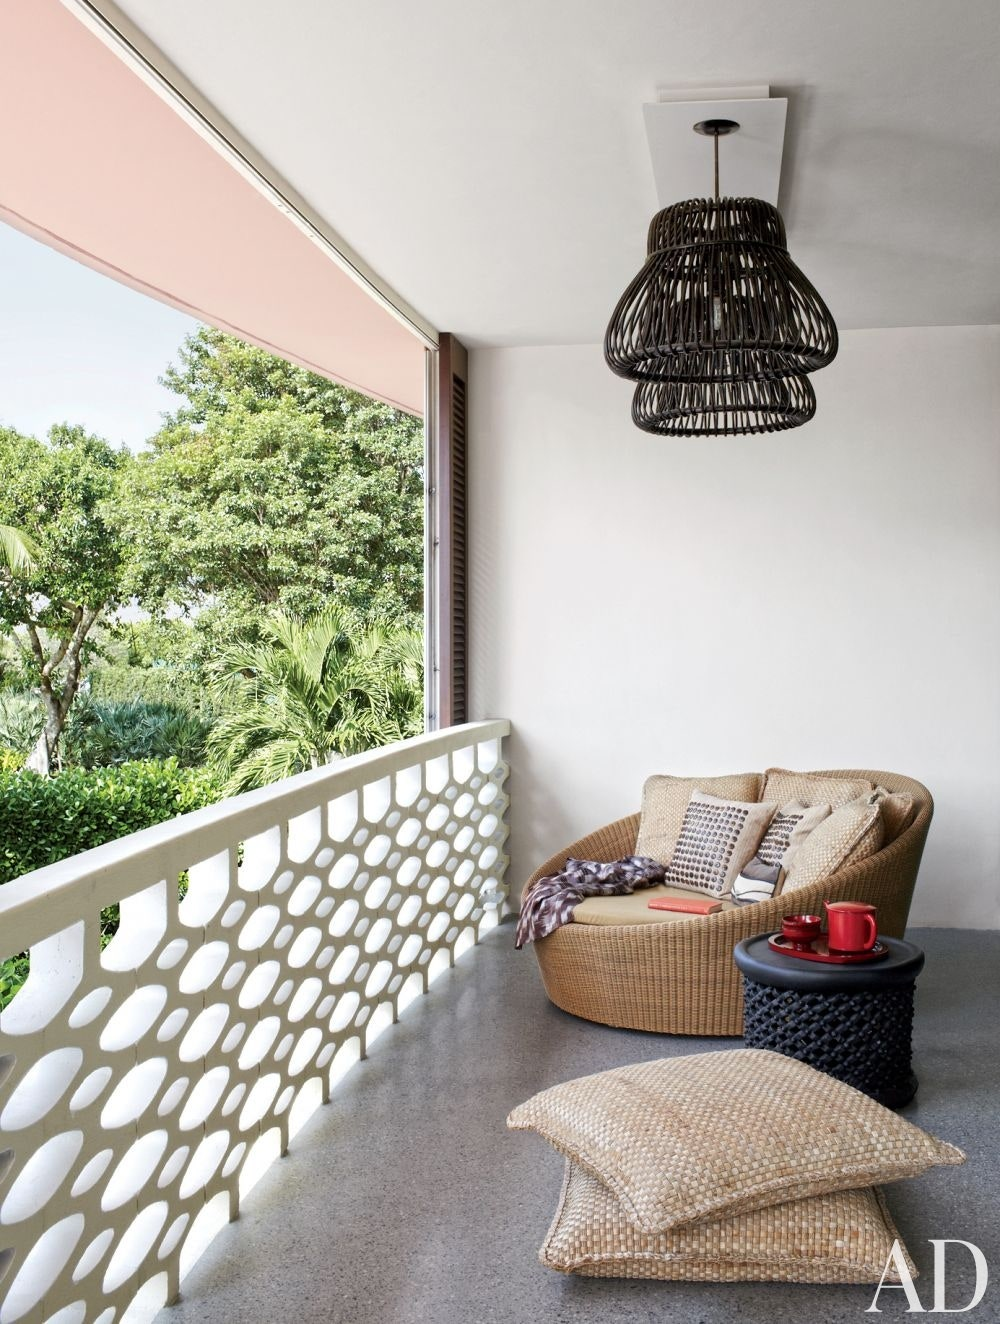 How to decorate an apartment balcony